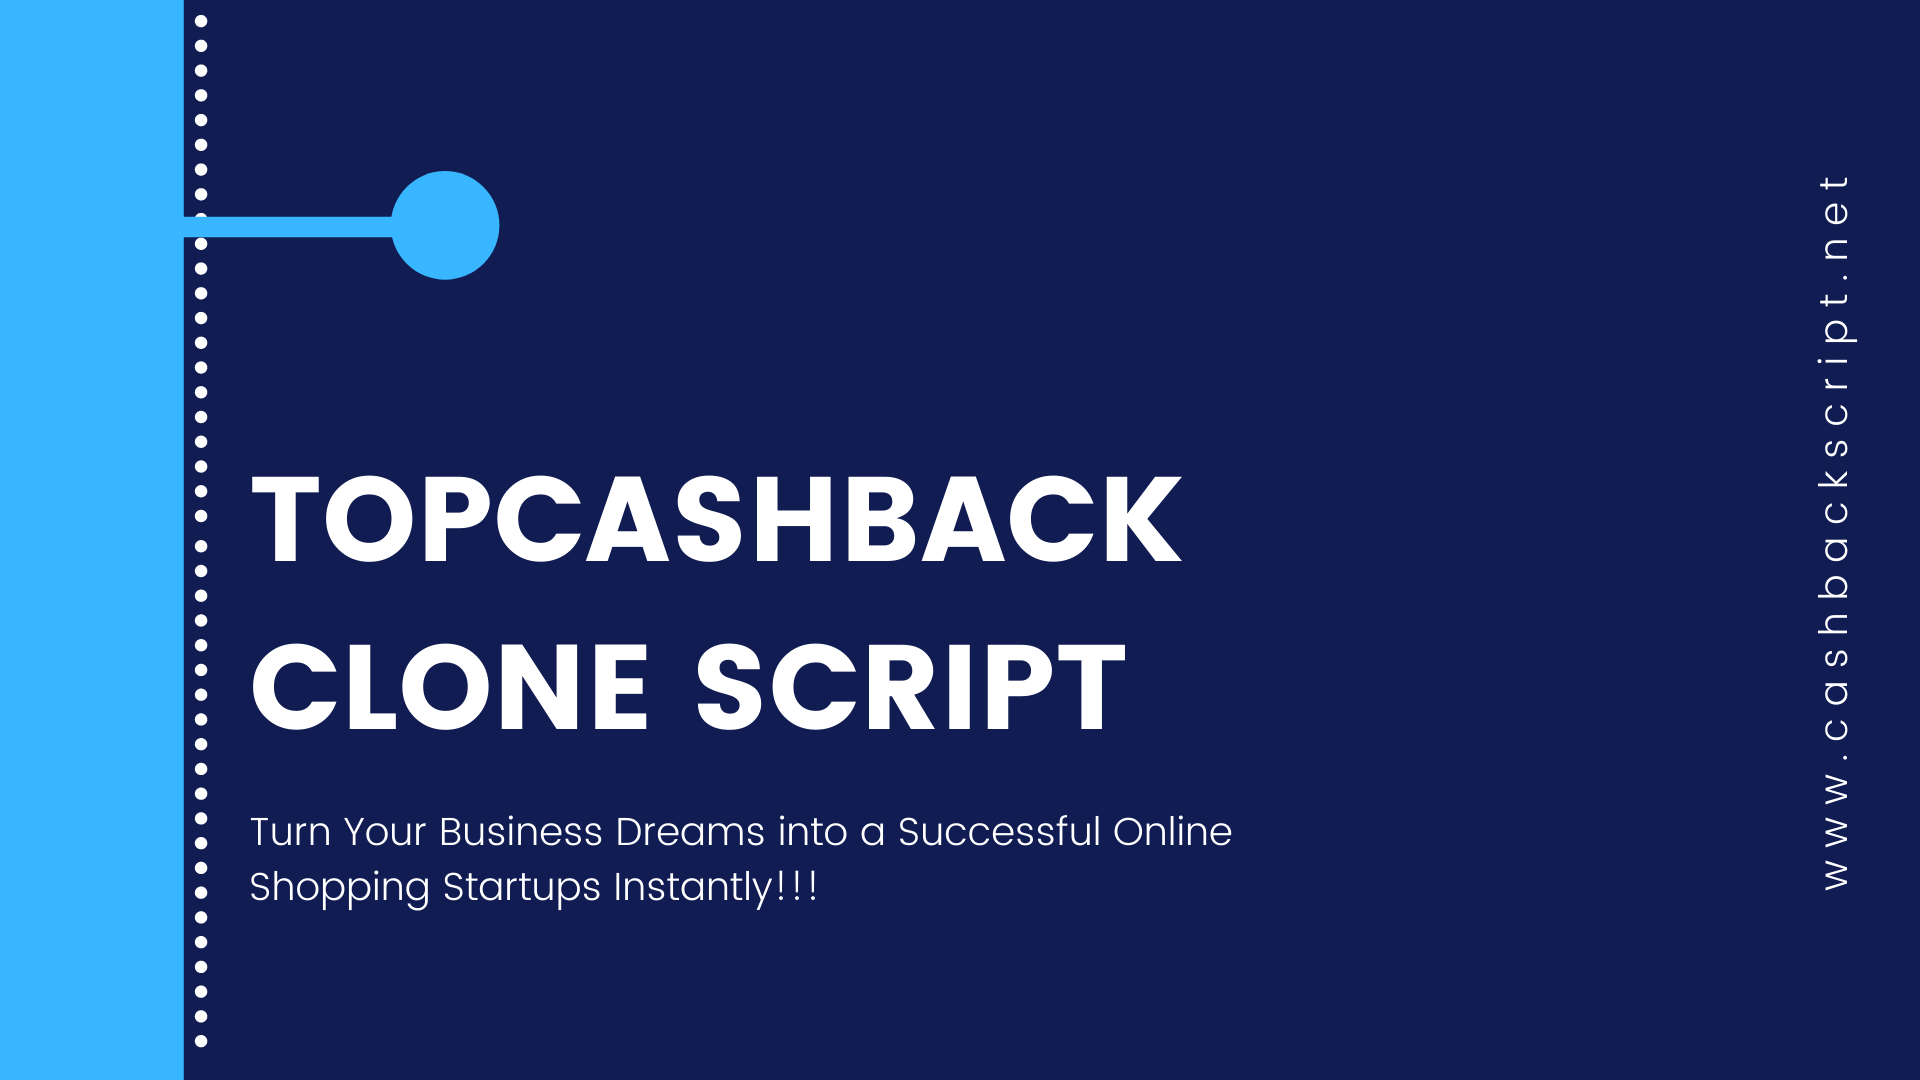 TopCashback Clone Script to Launch your own Cashback Platform like TopCashback